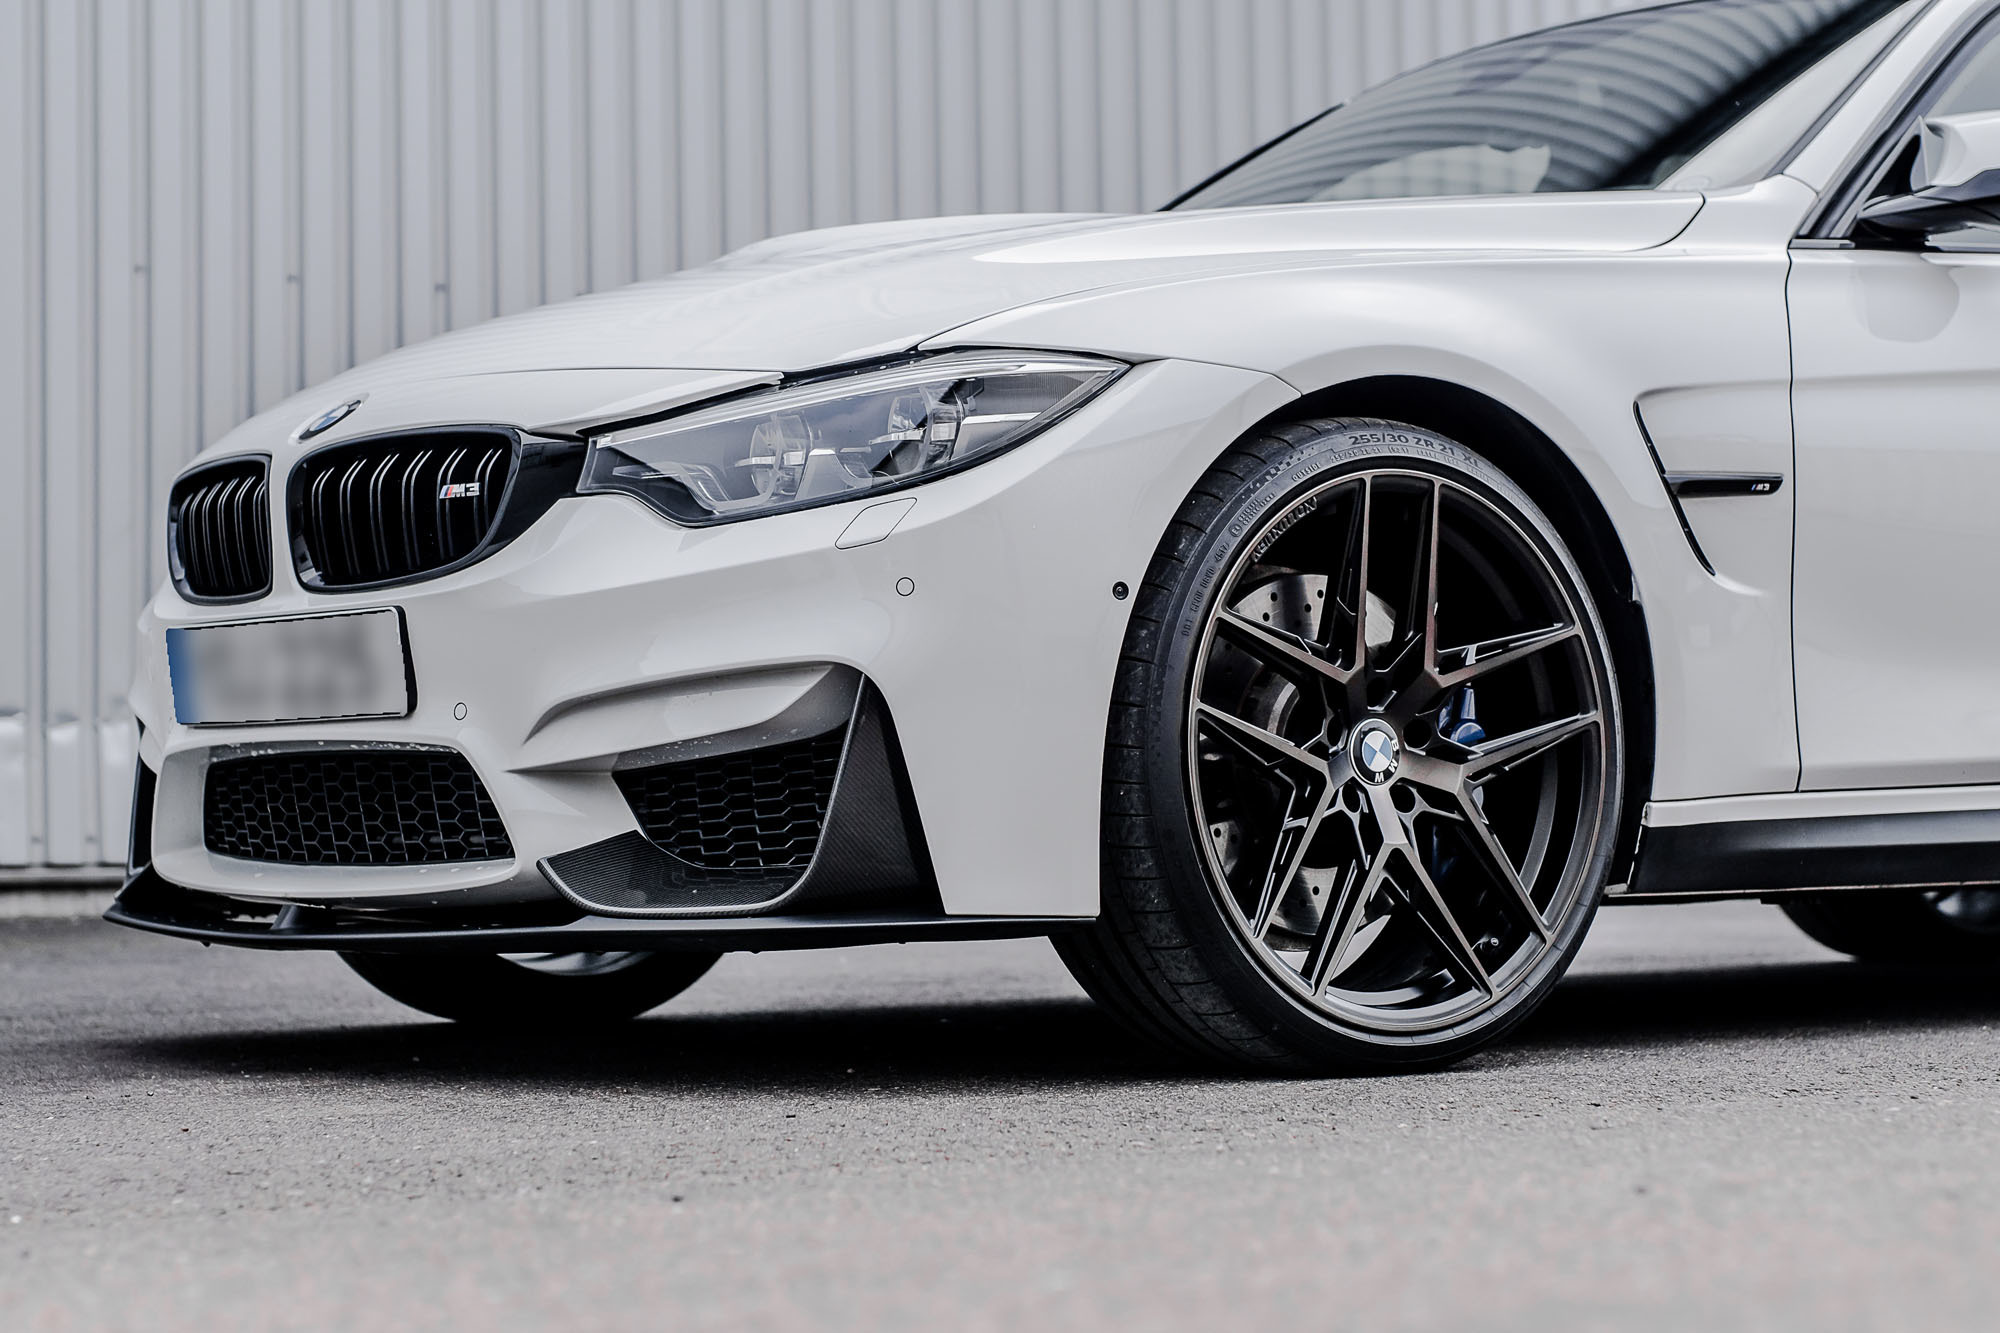 BMW M3  F80 on XO Luxury Cairo carbon graphite rotary rims - 22 forged wheels